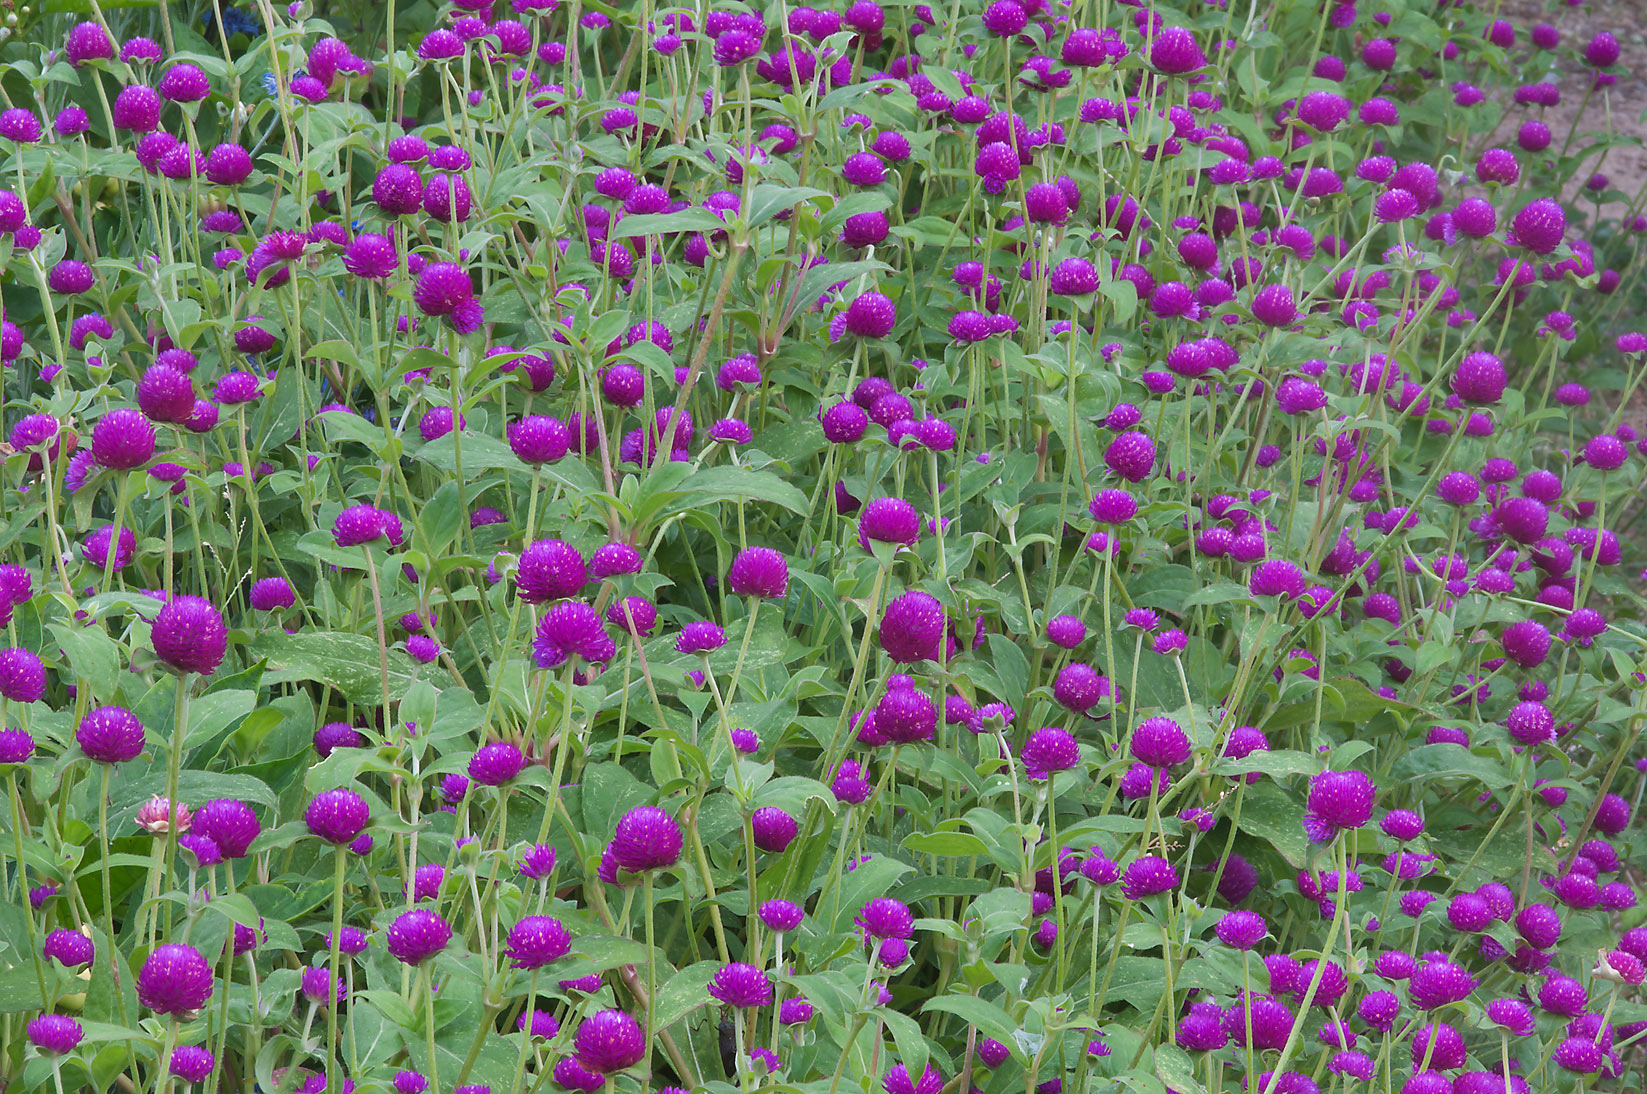 Globe amaranth in TAMU Holistic Garden in Texas A&M University. College Station, Texas